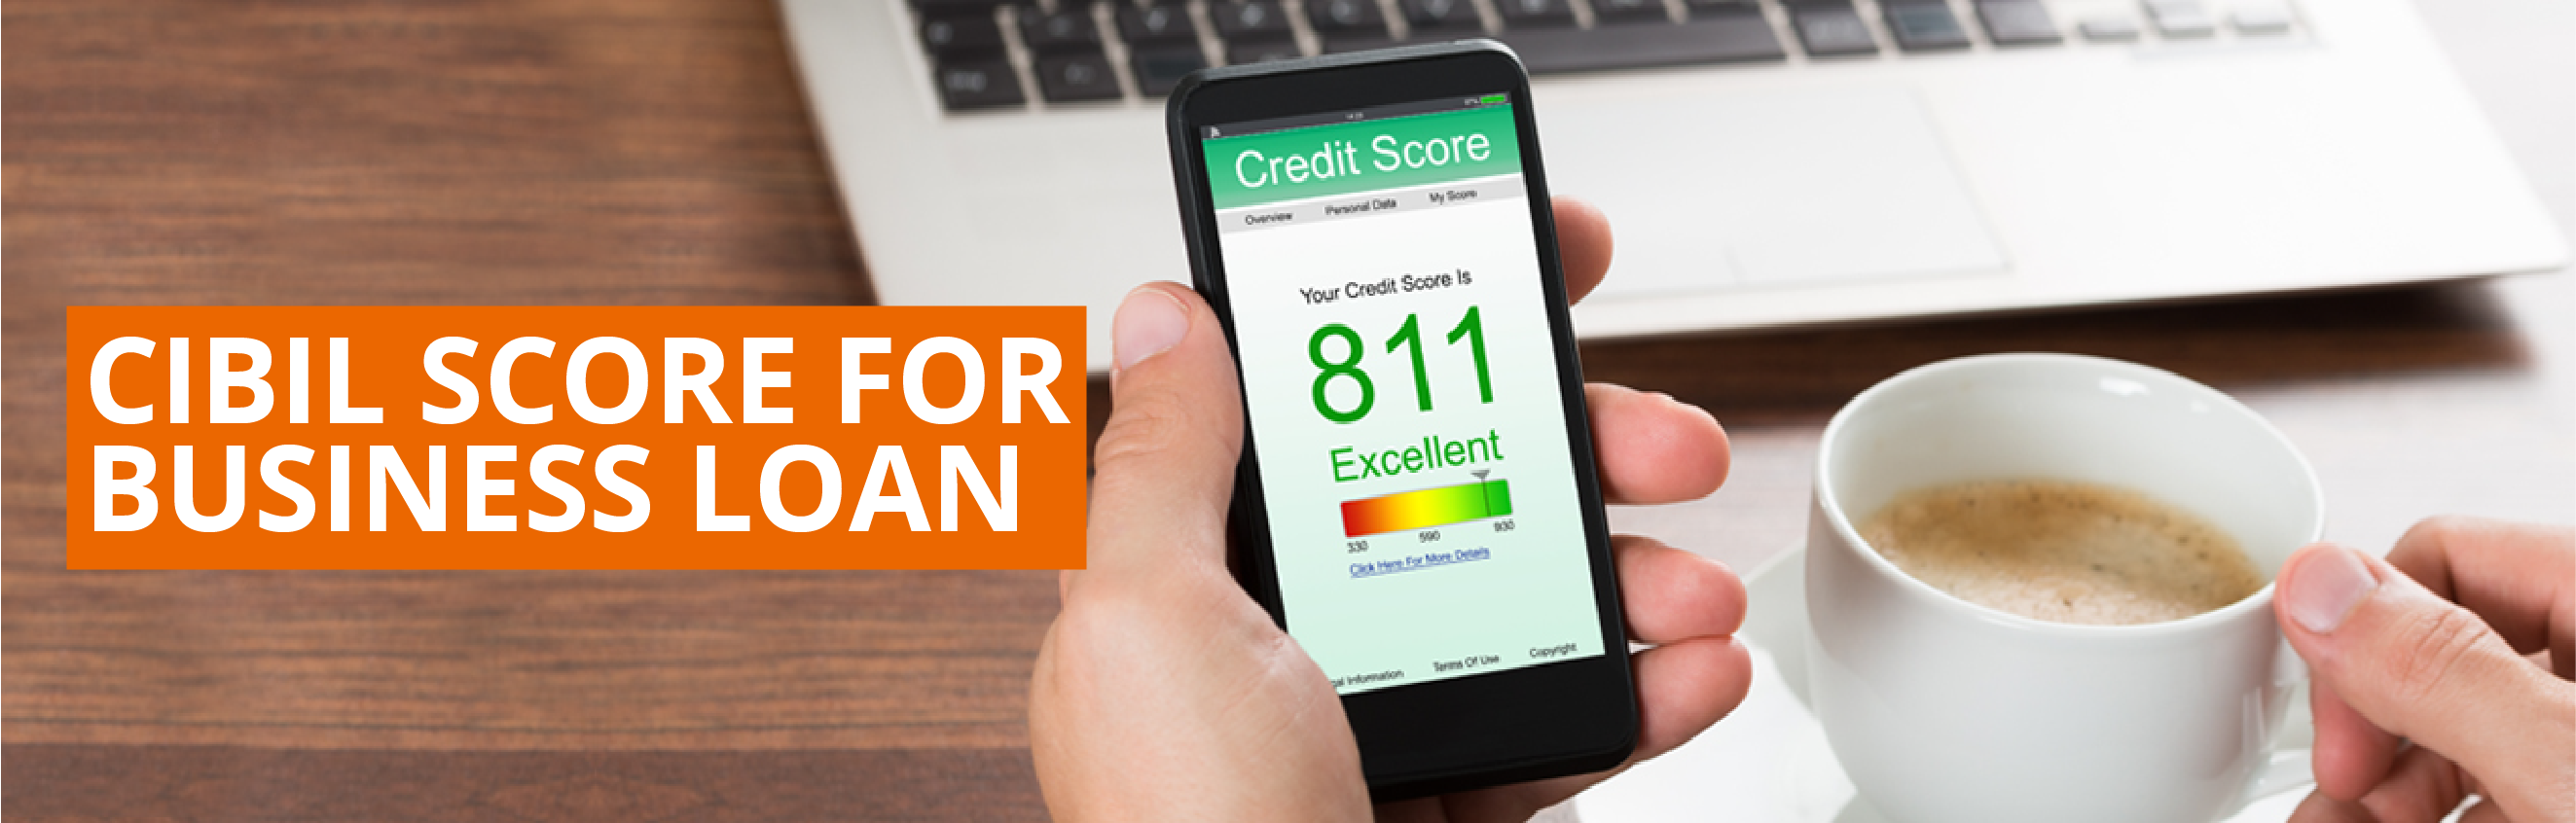 Cibil Score for Business Loan